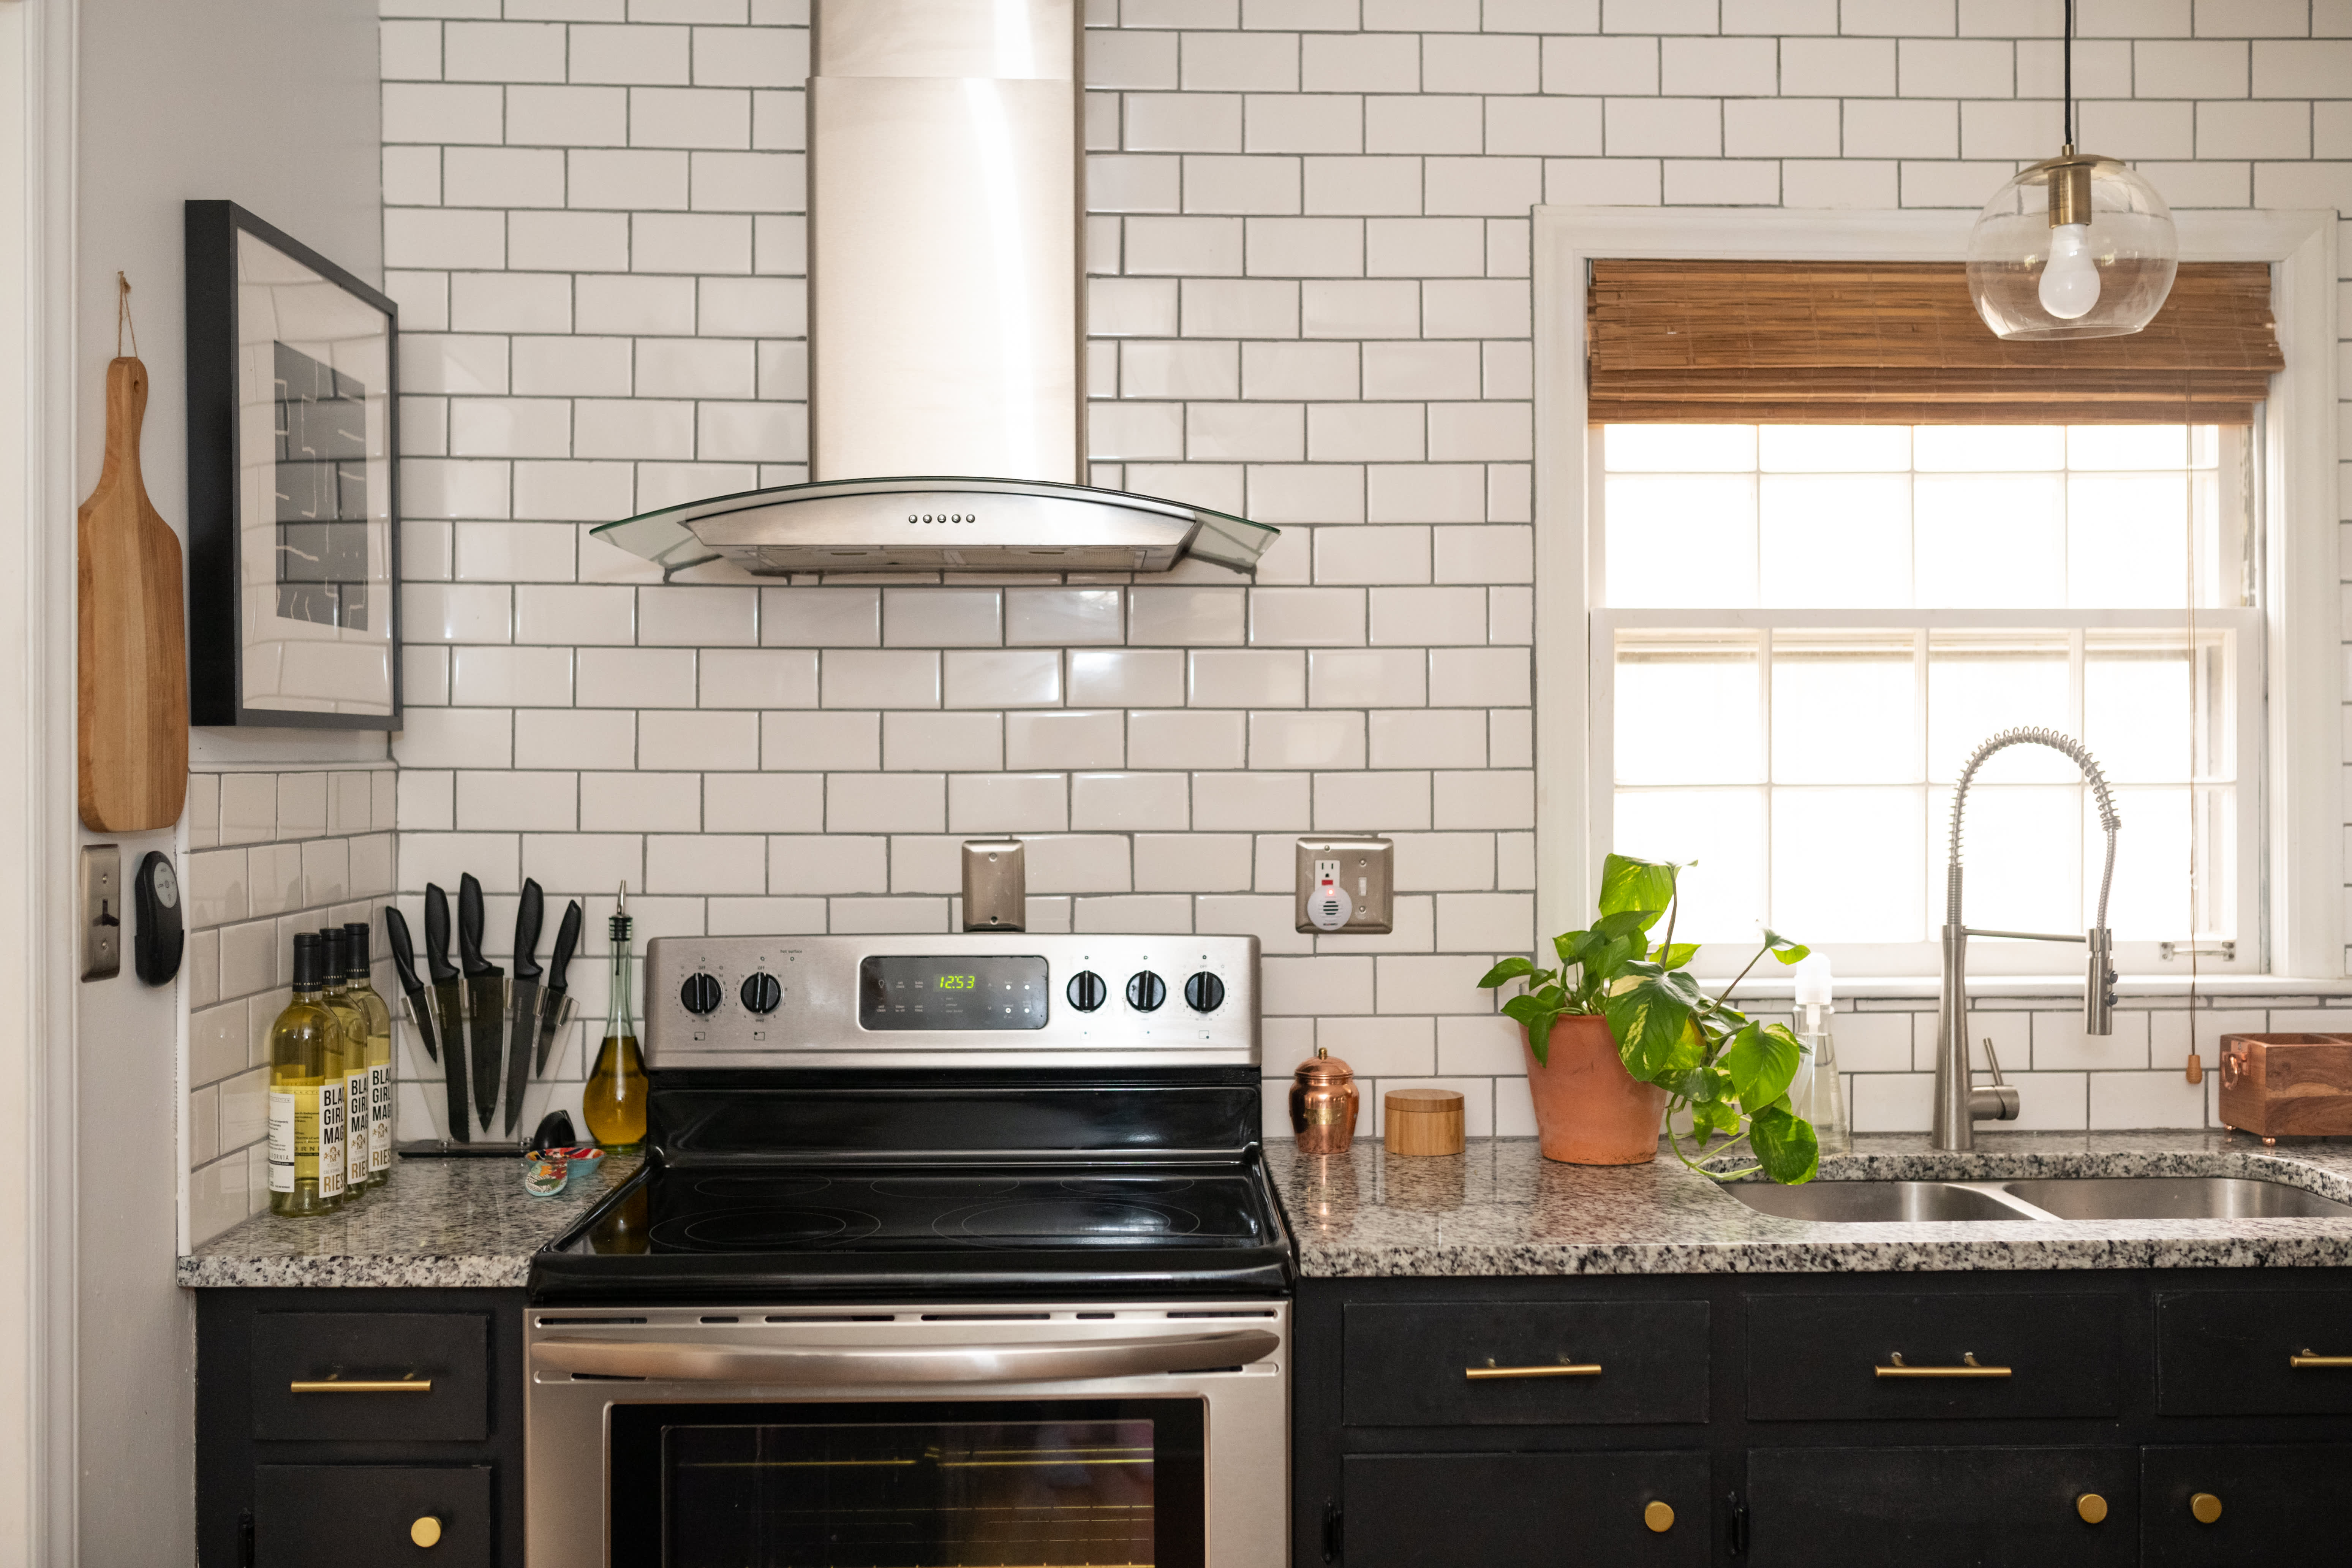 Hi Tech Touchless Kitchen Faucets Are A Growing Trend